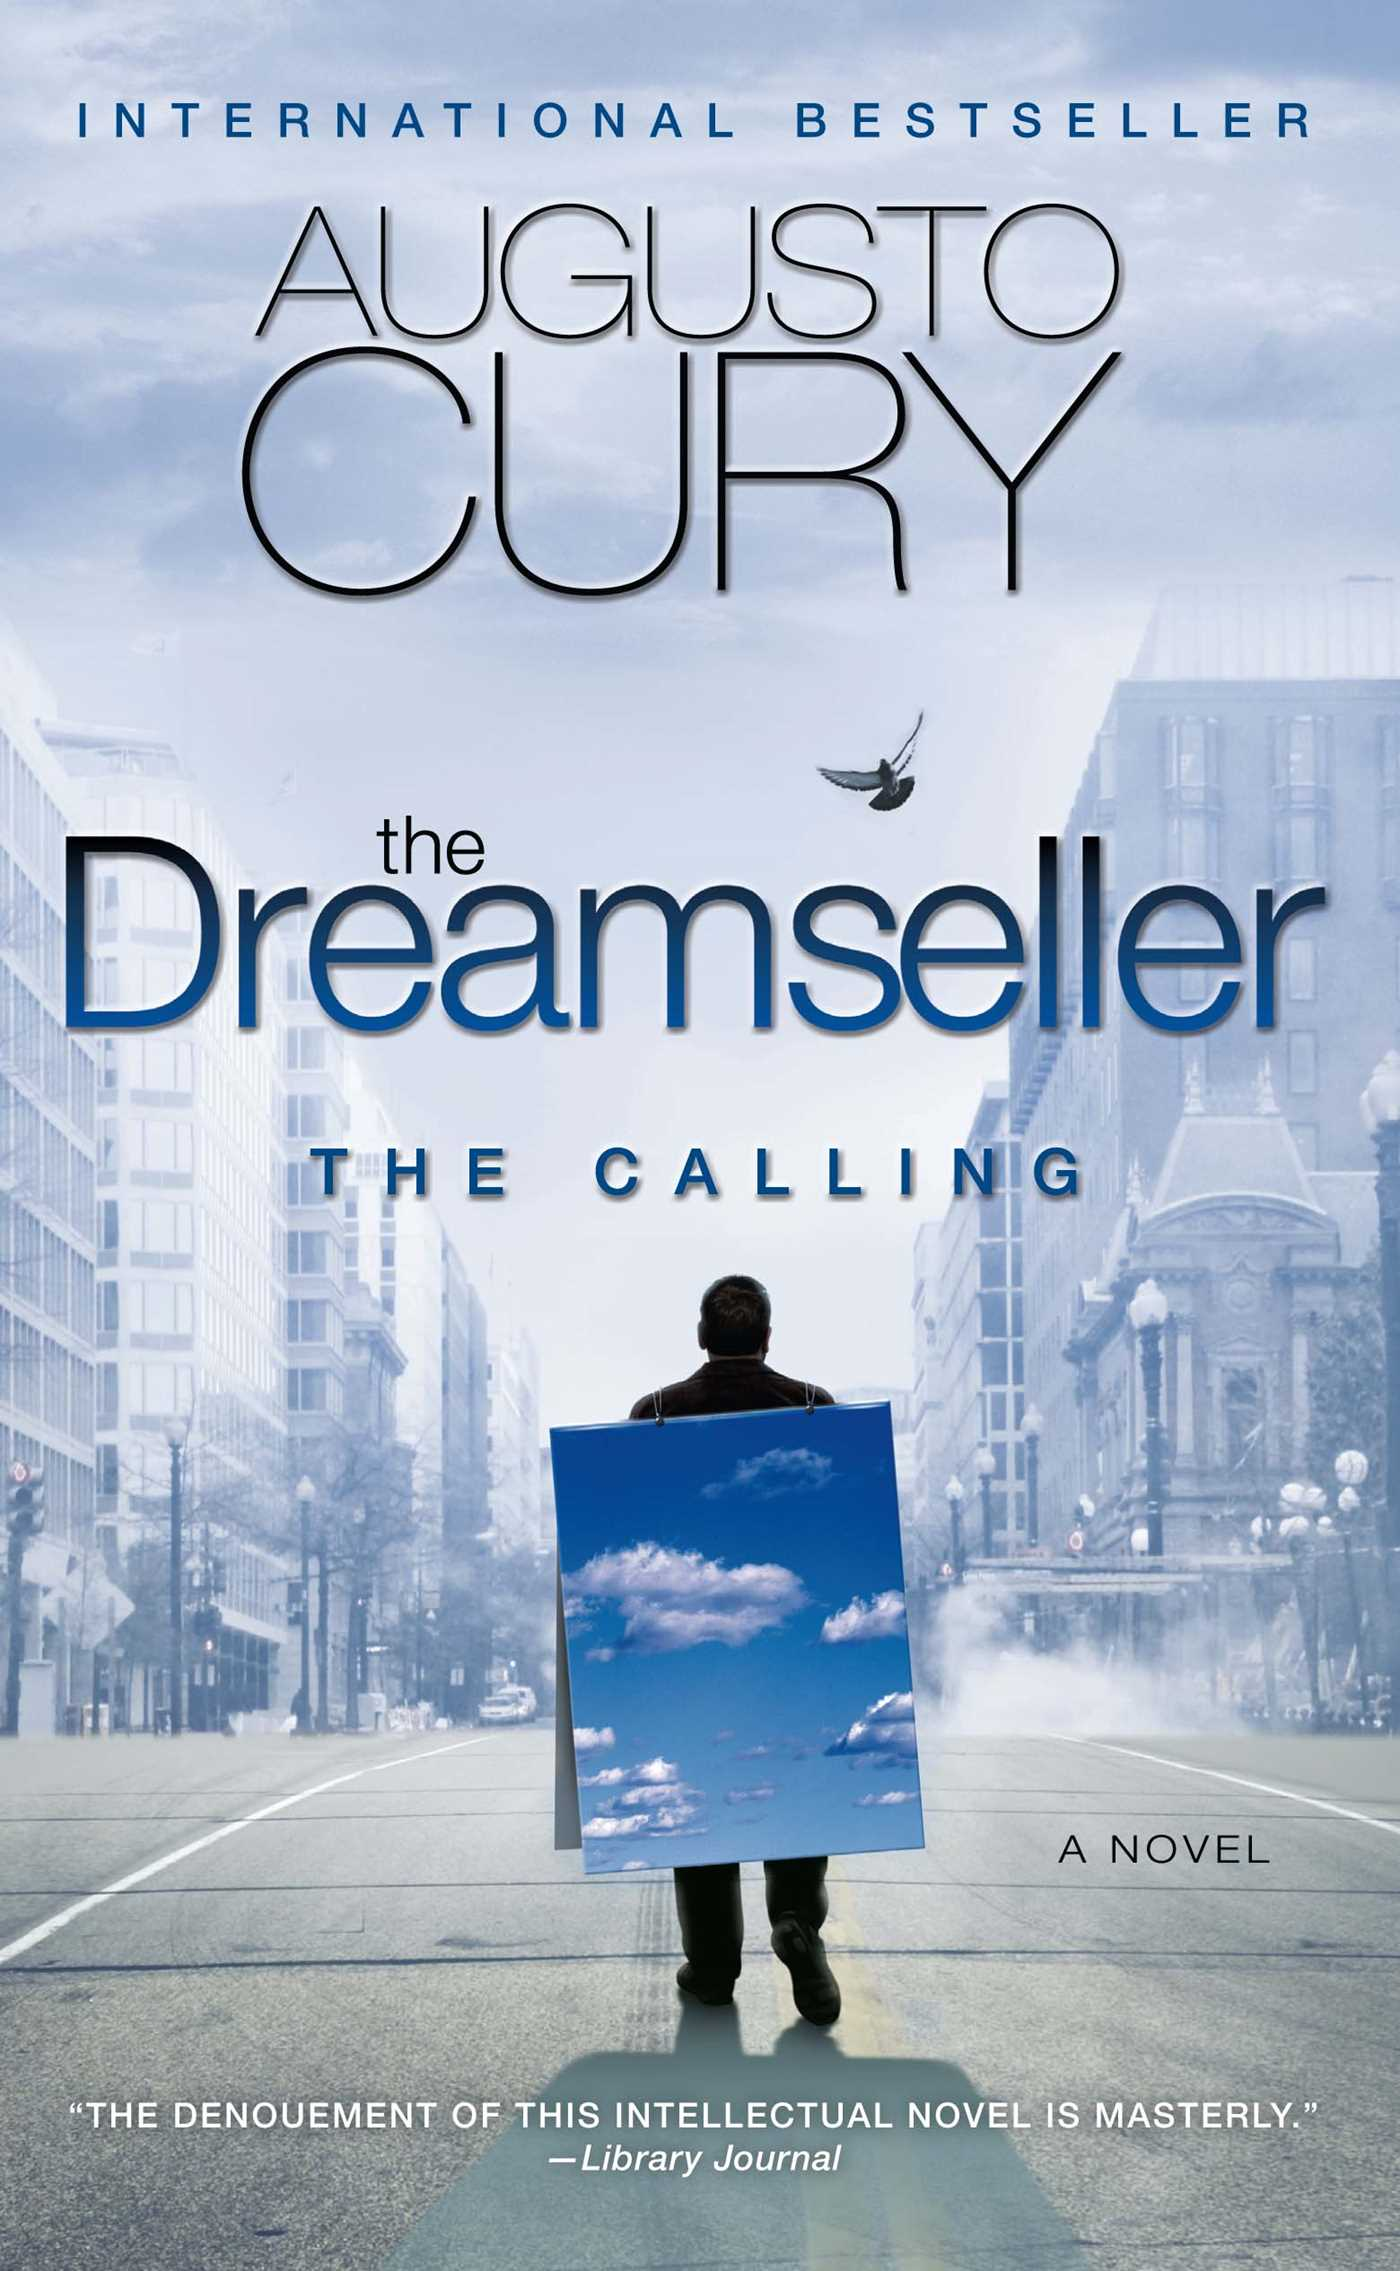 Dreamseller-the-calling-9781439196045_hr